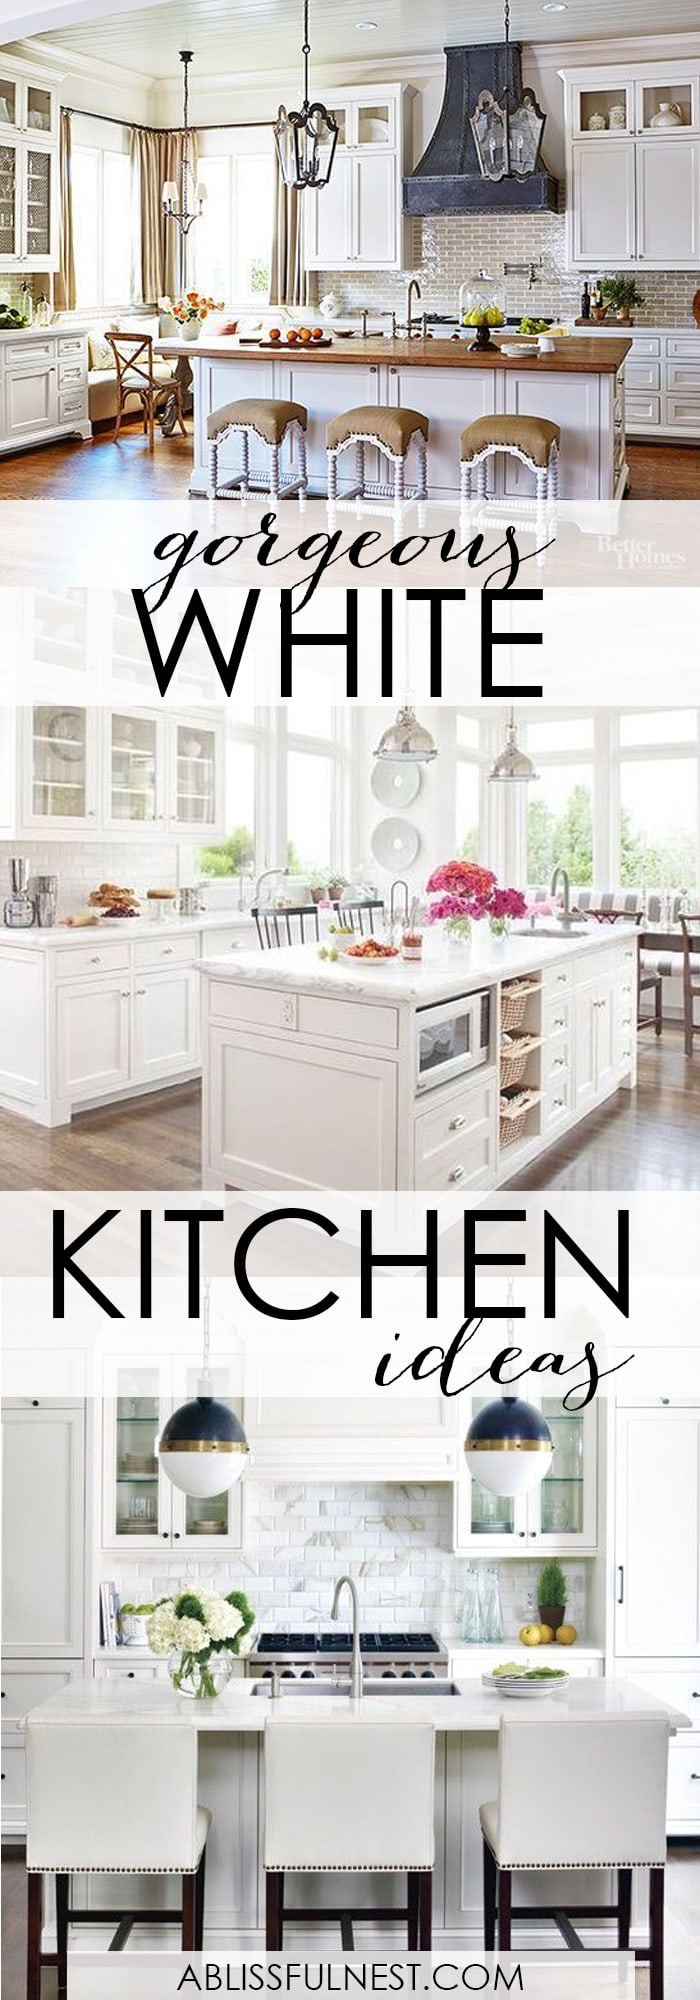 Gorgeous white kitchen ideas modern farmhouse coastal All white kitchen ideas